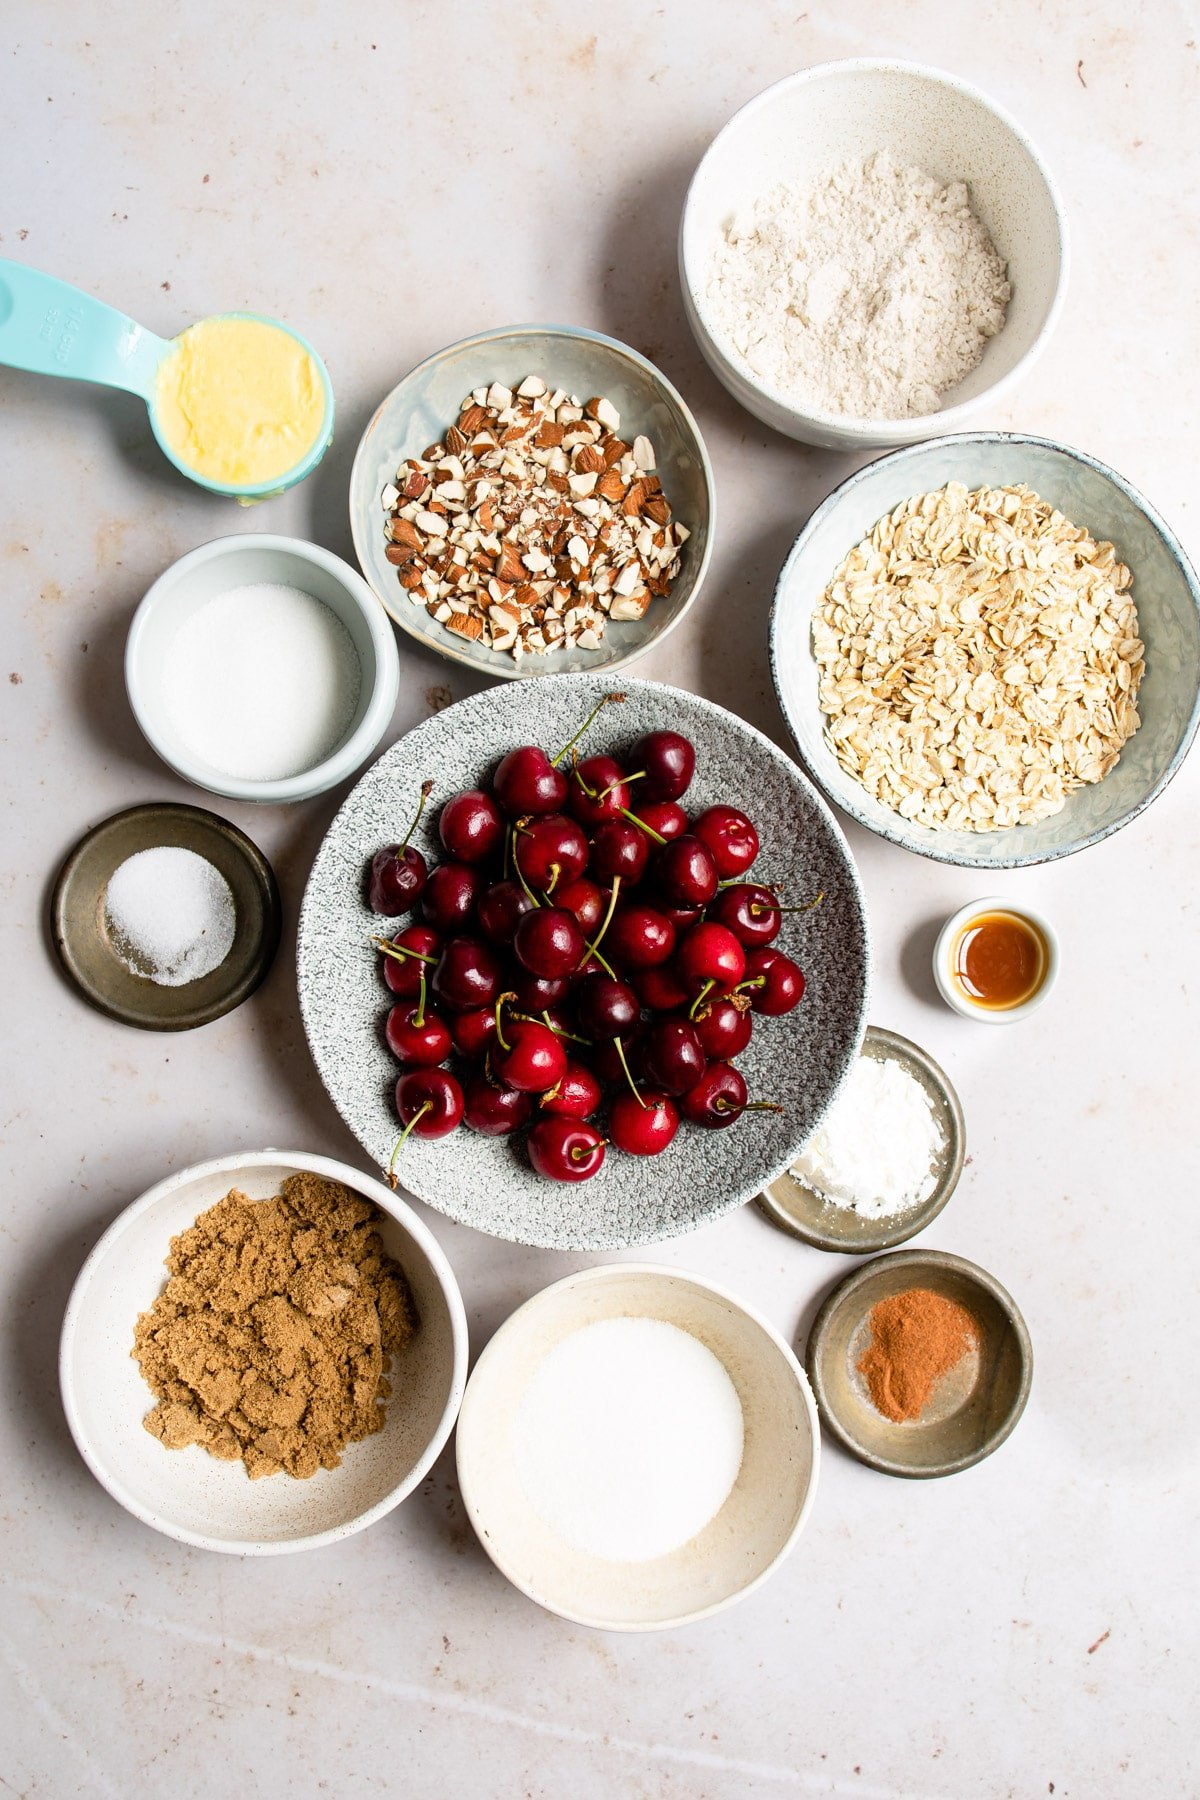 Ingredients for cherry crisp in bowls next to each other.